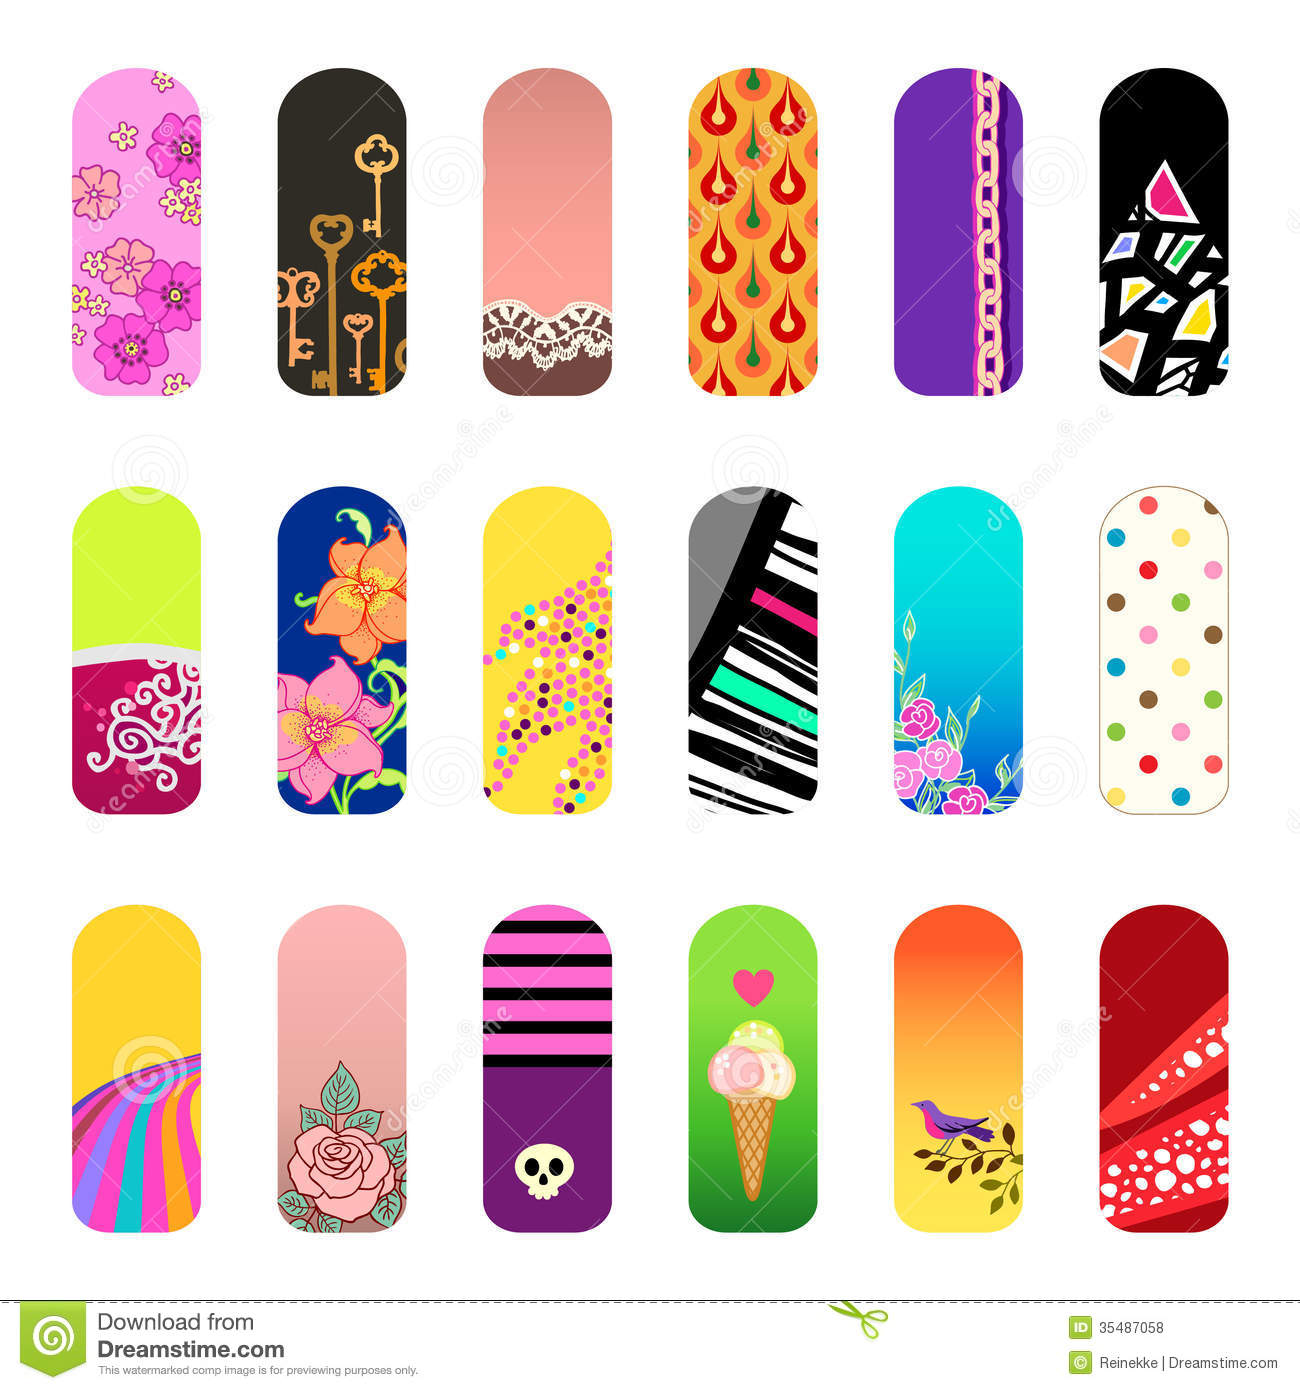 Nail stickers royalty free stock photos image 35487058 for Stickers salon design